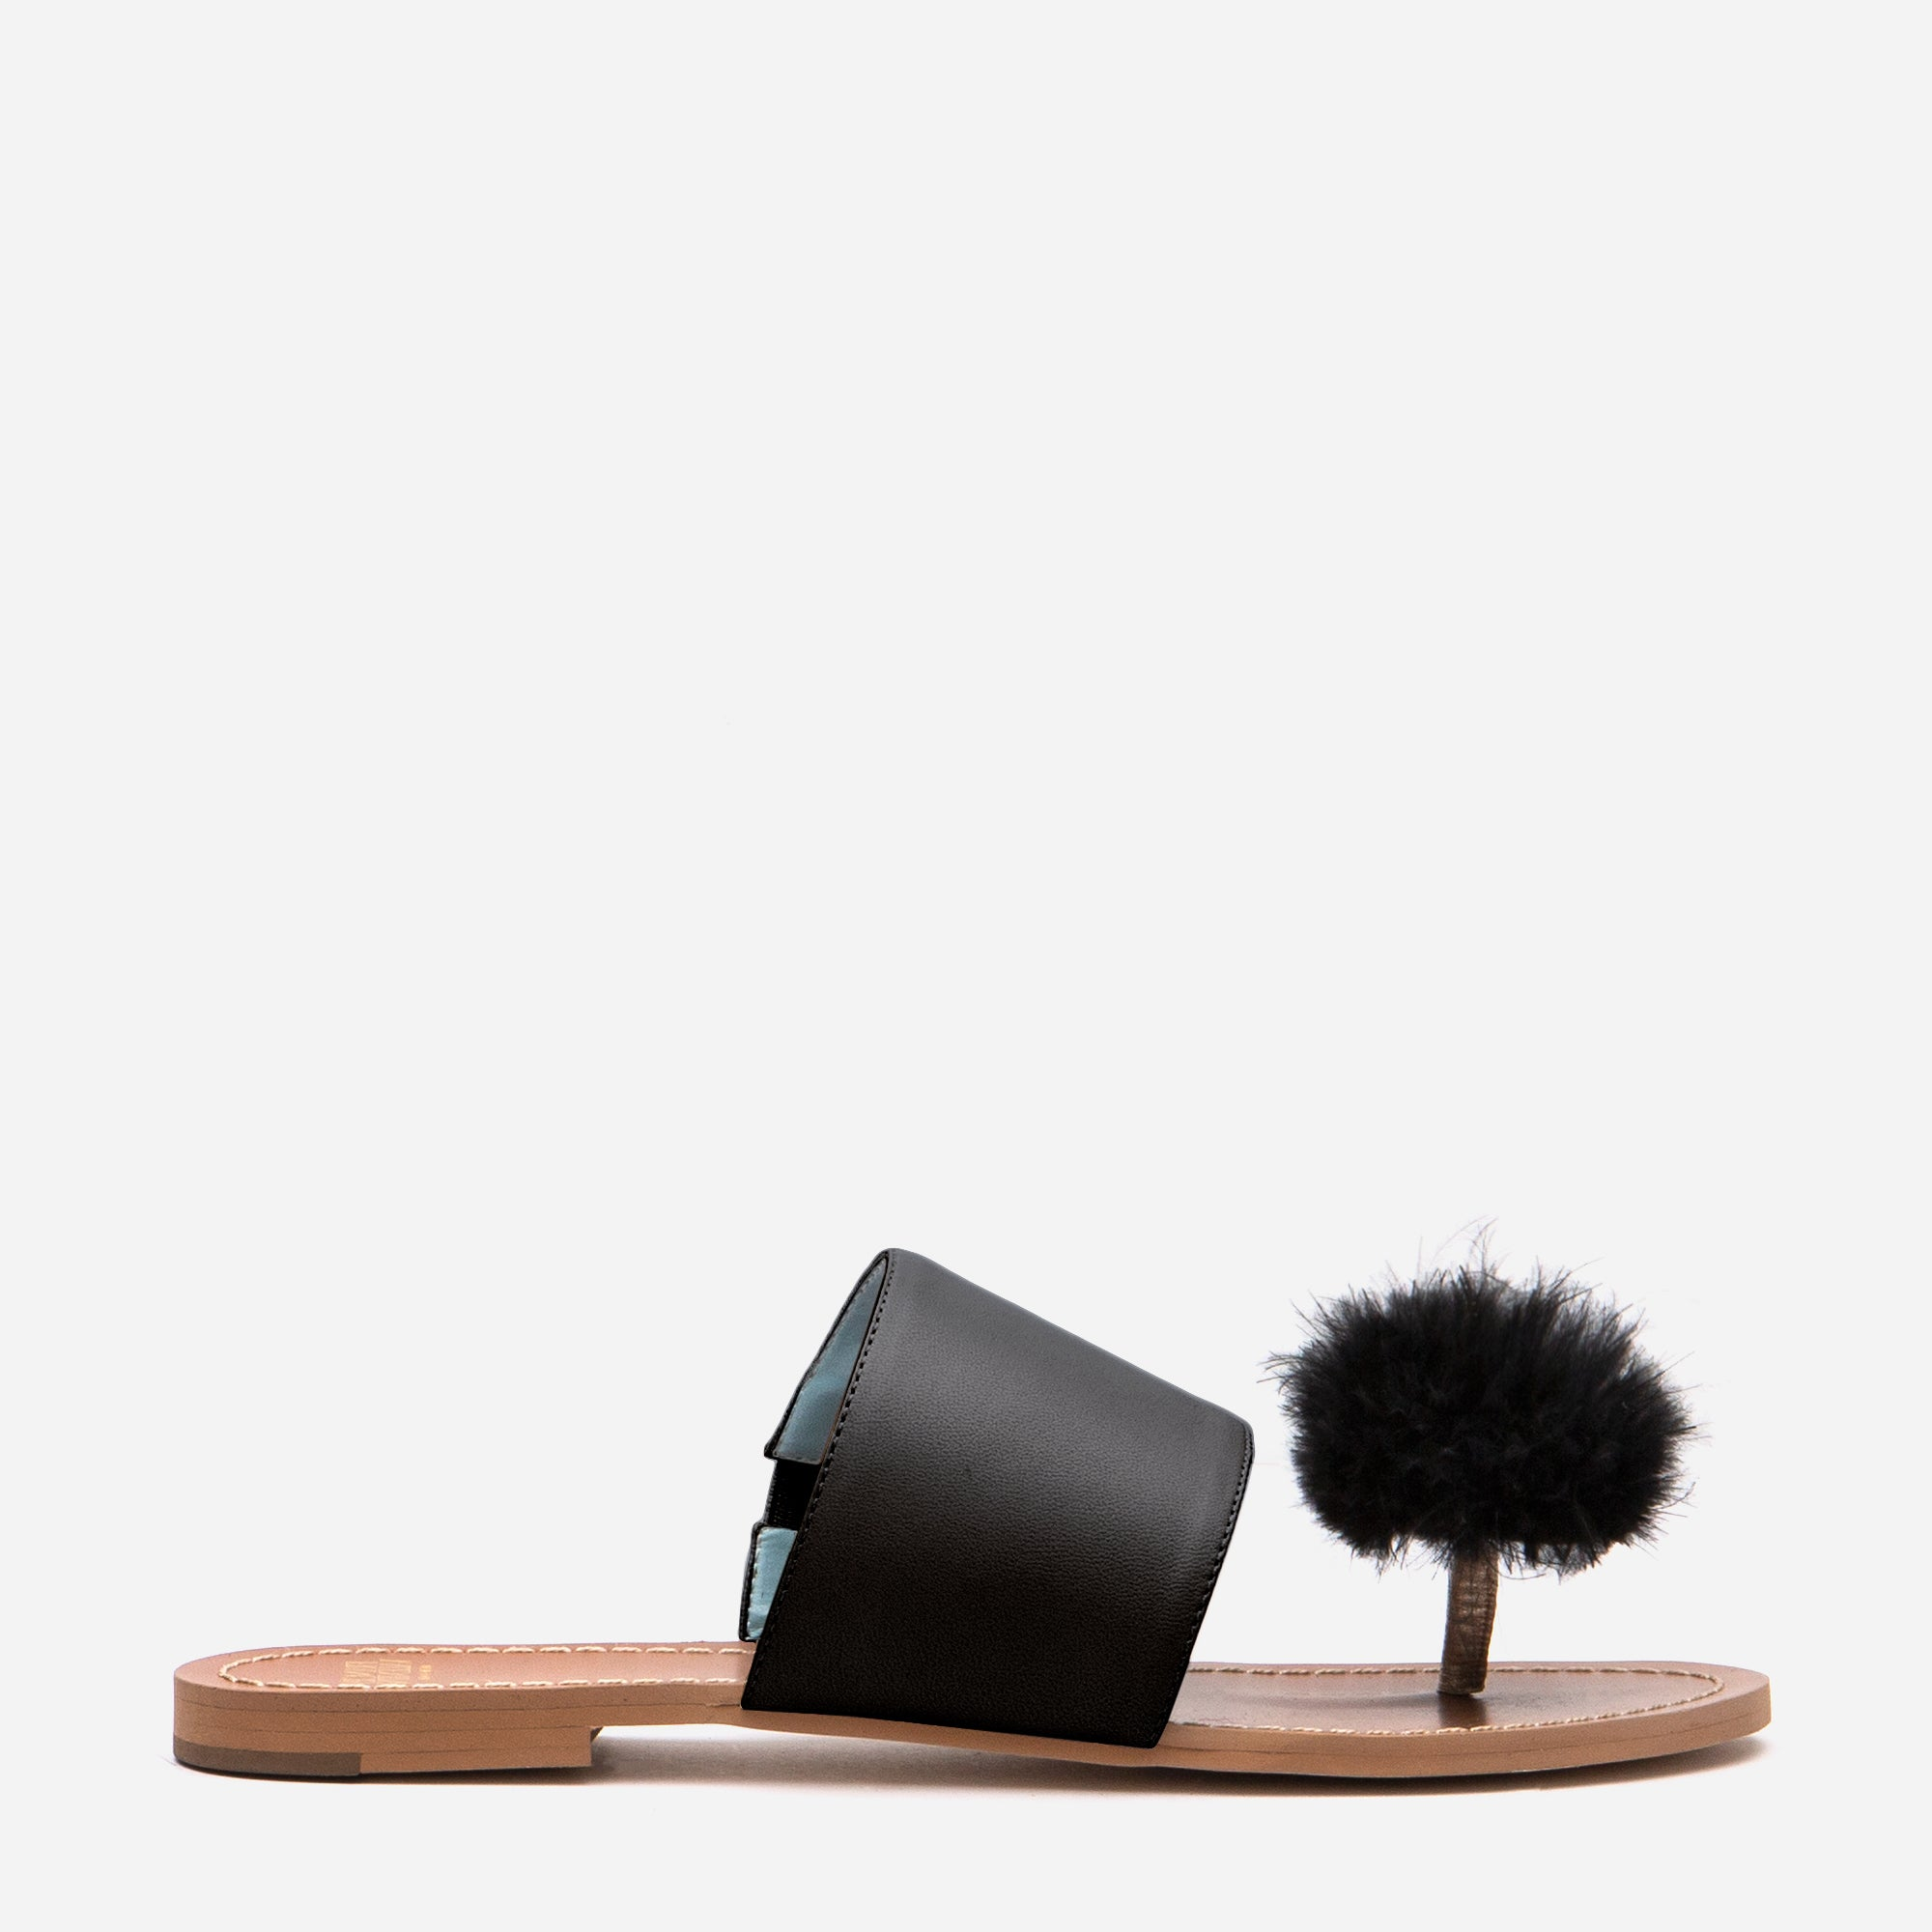 Clementine Pom Pom Sandal Black *FINAL SALE*